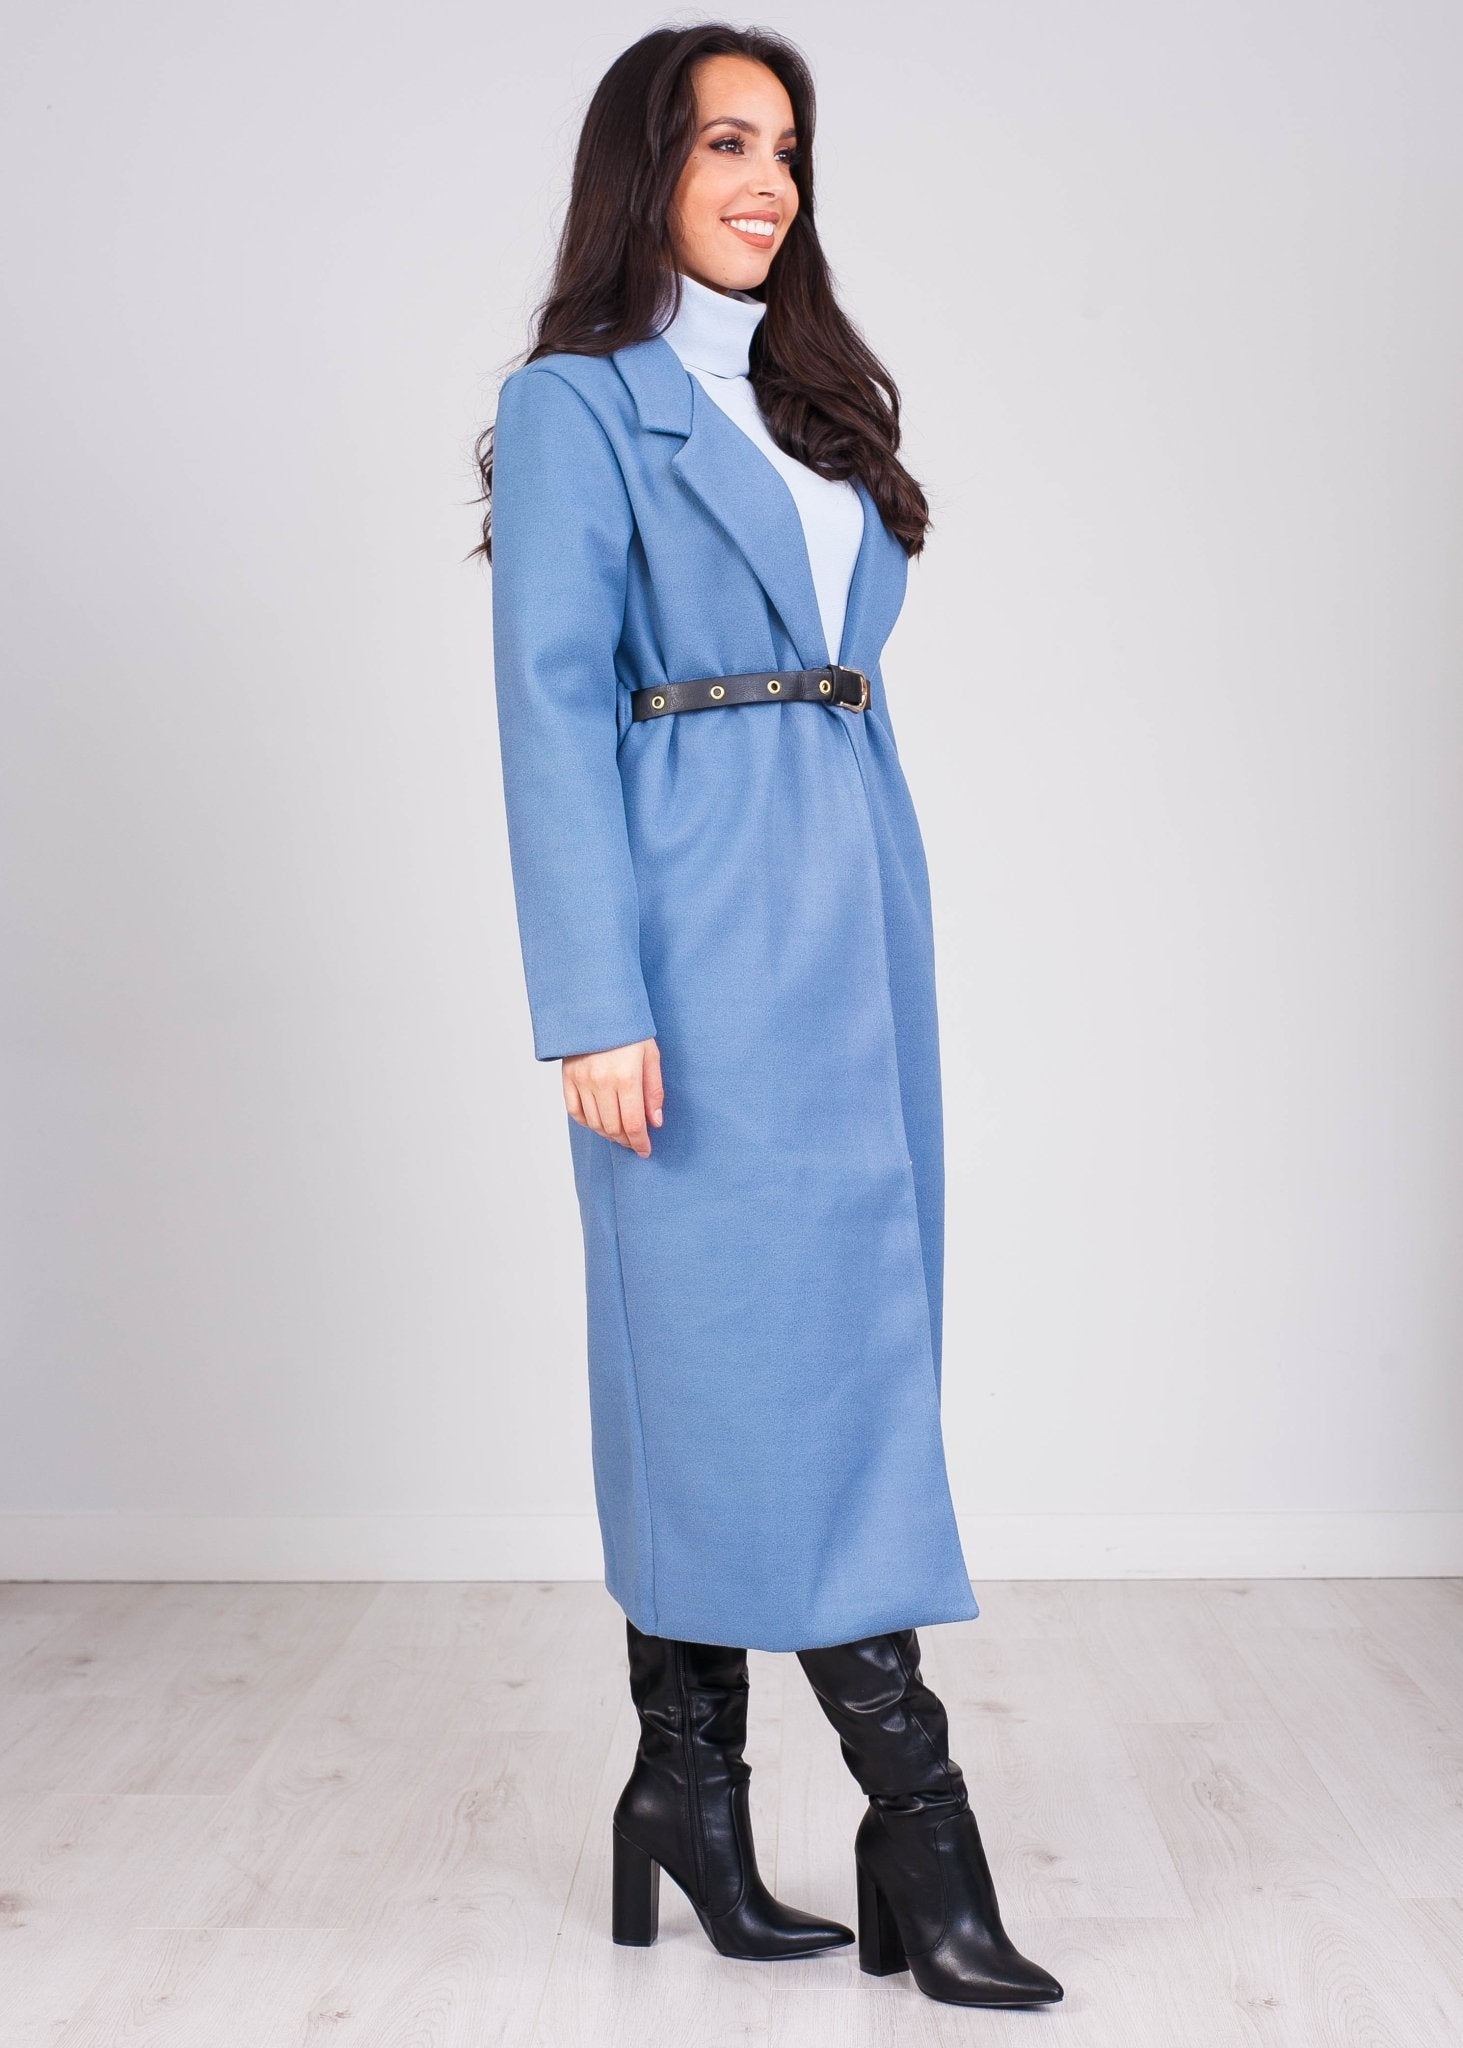 Emilia Powder Blue Loneline Coat - The Walk in Wardrobe